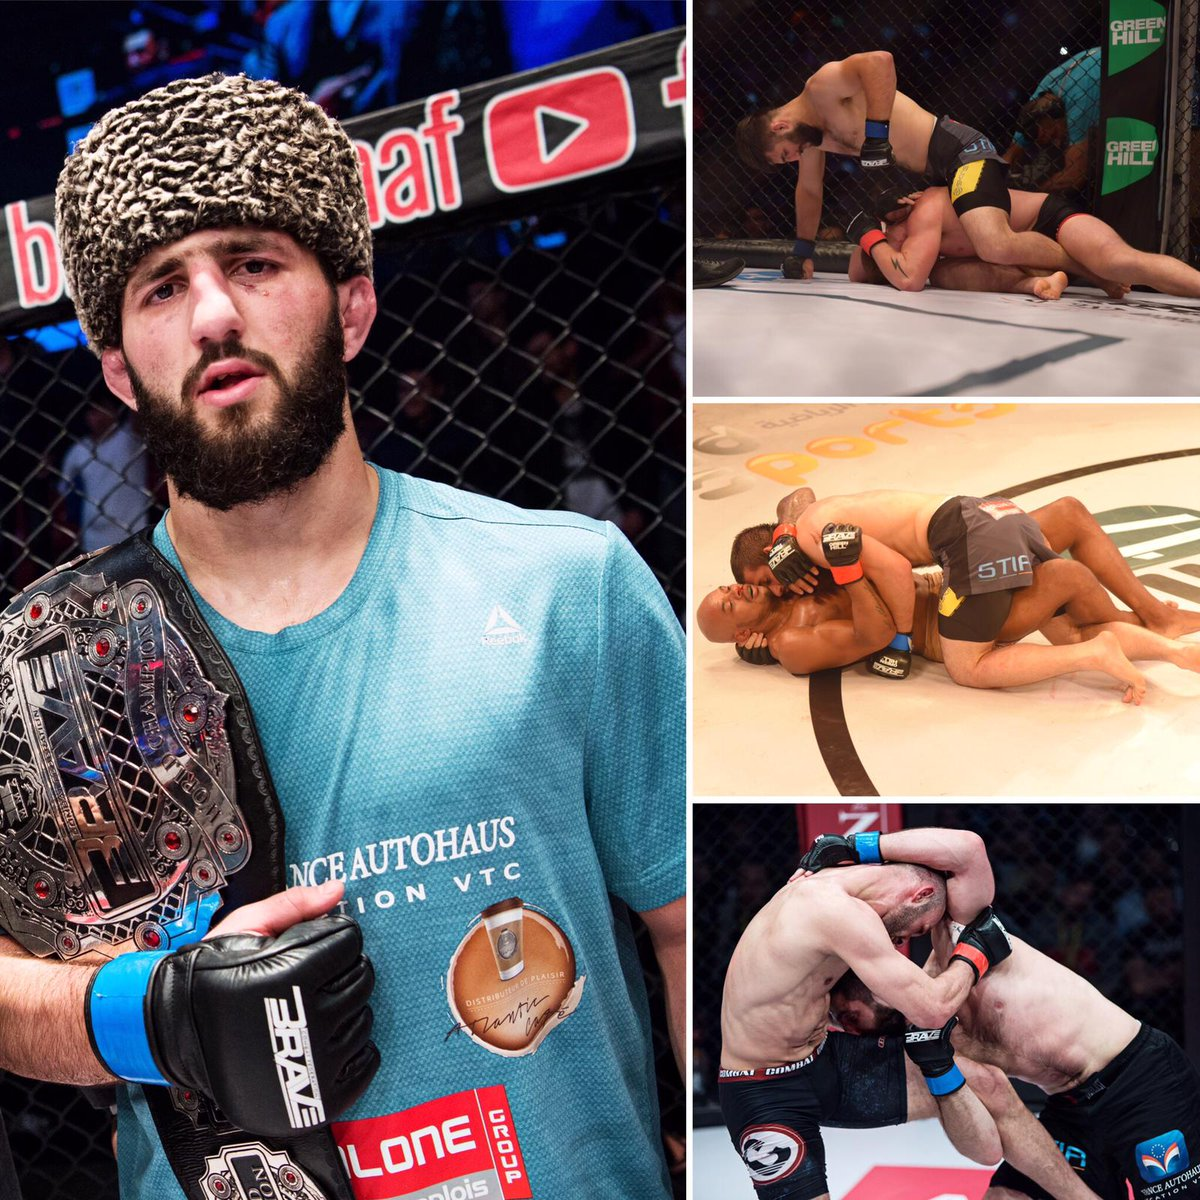 """He came, he saw, he conquered! 👑🔥 @abdouraguimov """"The Conqueror"""" #BRAVECF14 🇲🇦 - Debuts with 1st round TKO win #BRAVECF17 🇵🇰 - Win over Brazilian veteran via UD #BRAVECF23 🇯🇴- Maintains undefeated record and becomes #AndNew BARVE CF world champion."""